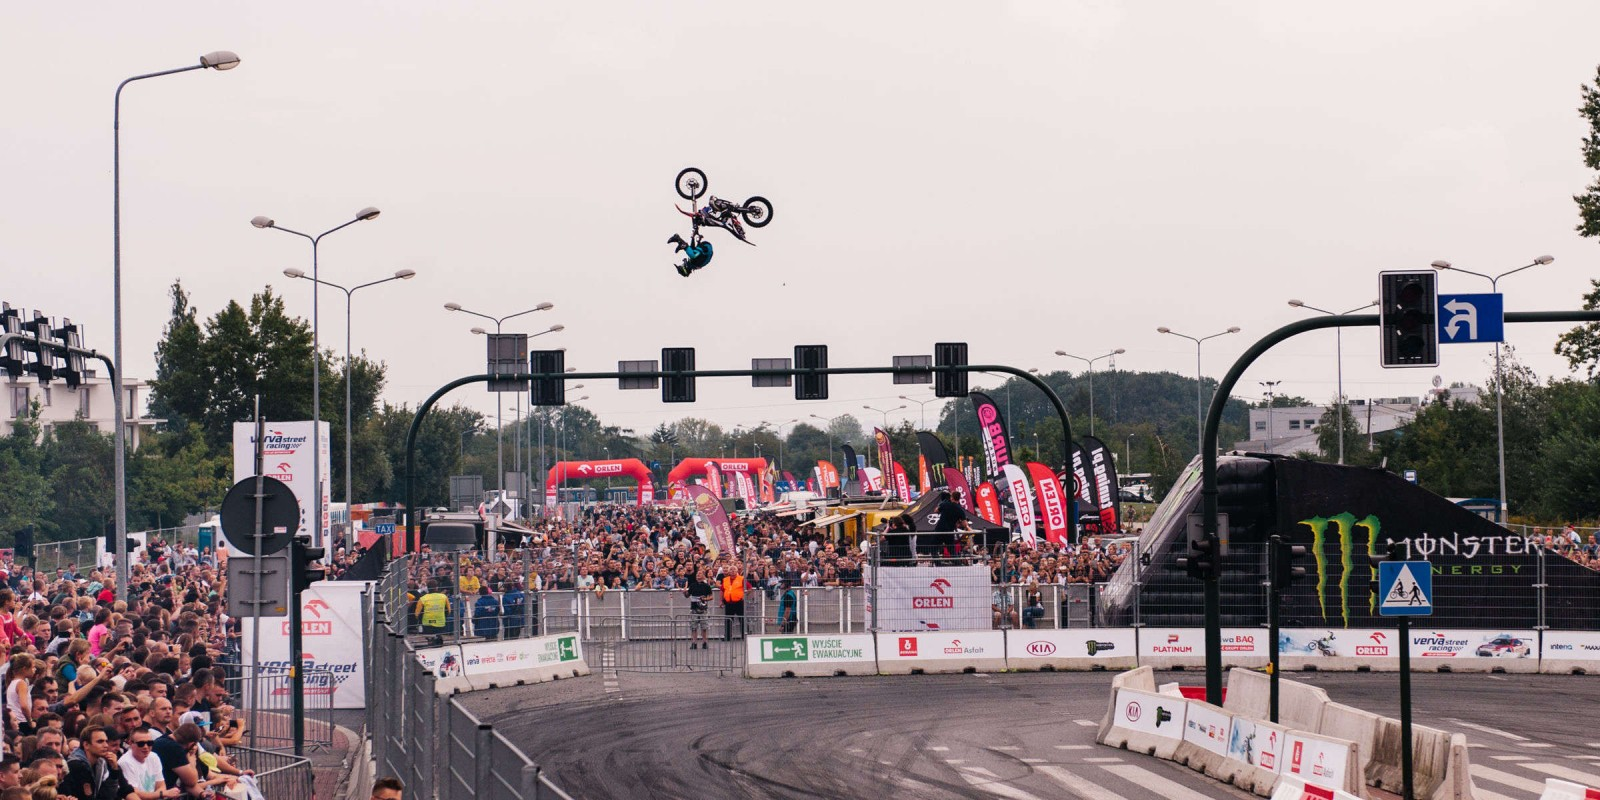 Images from 2018 Verva Street Racing in Poland.